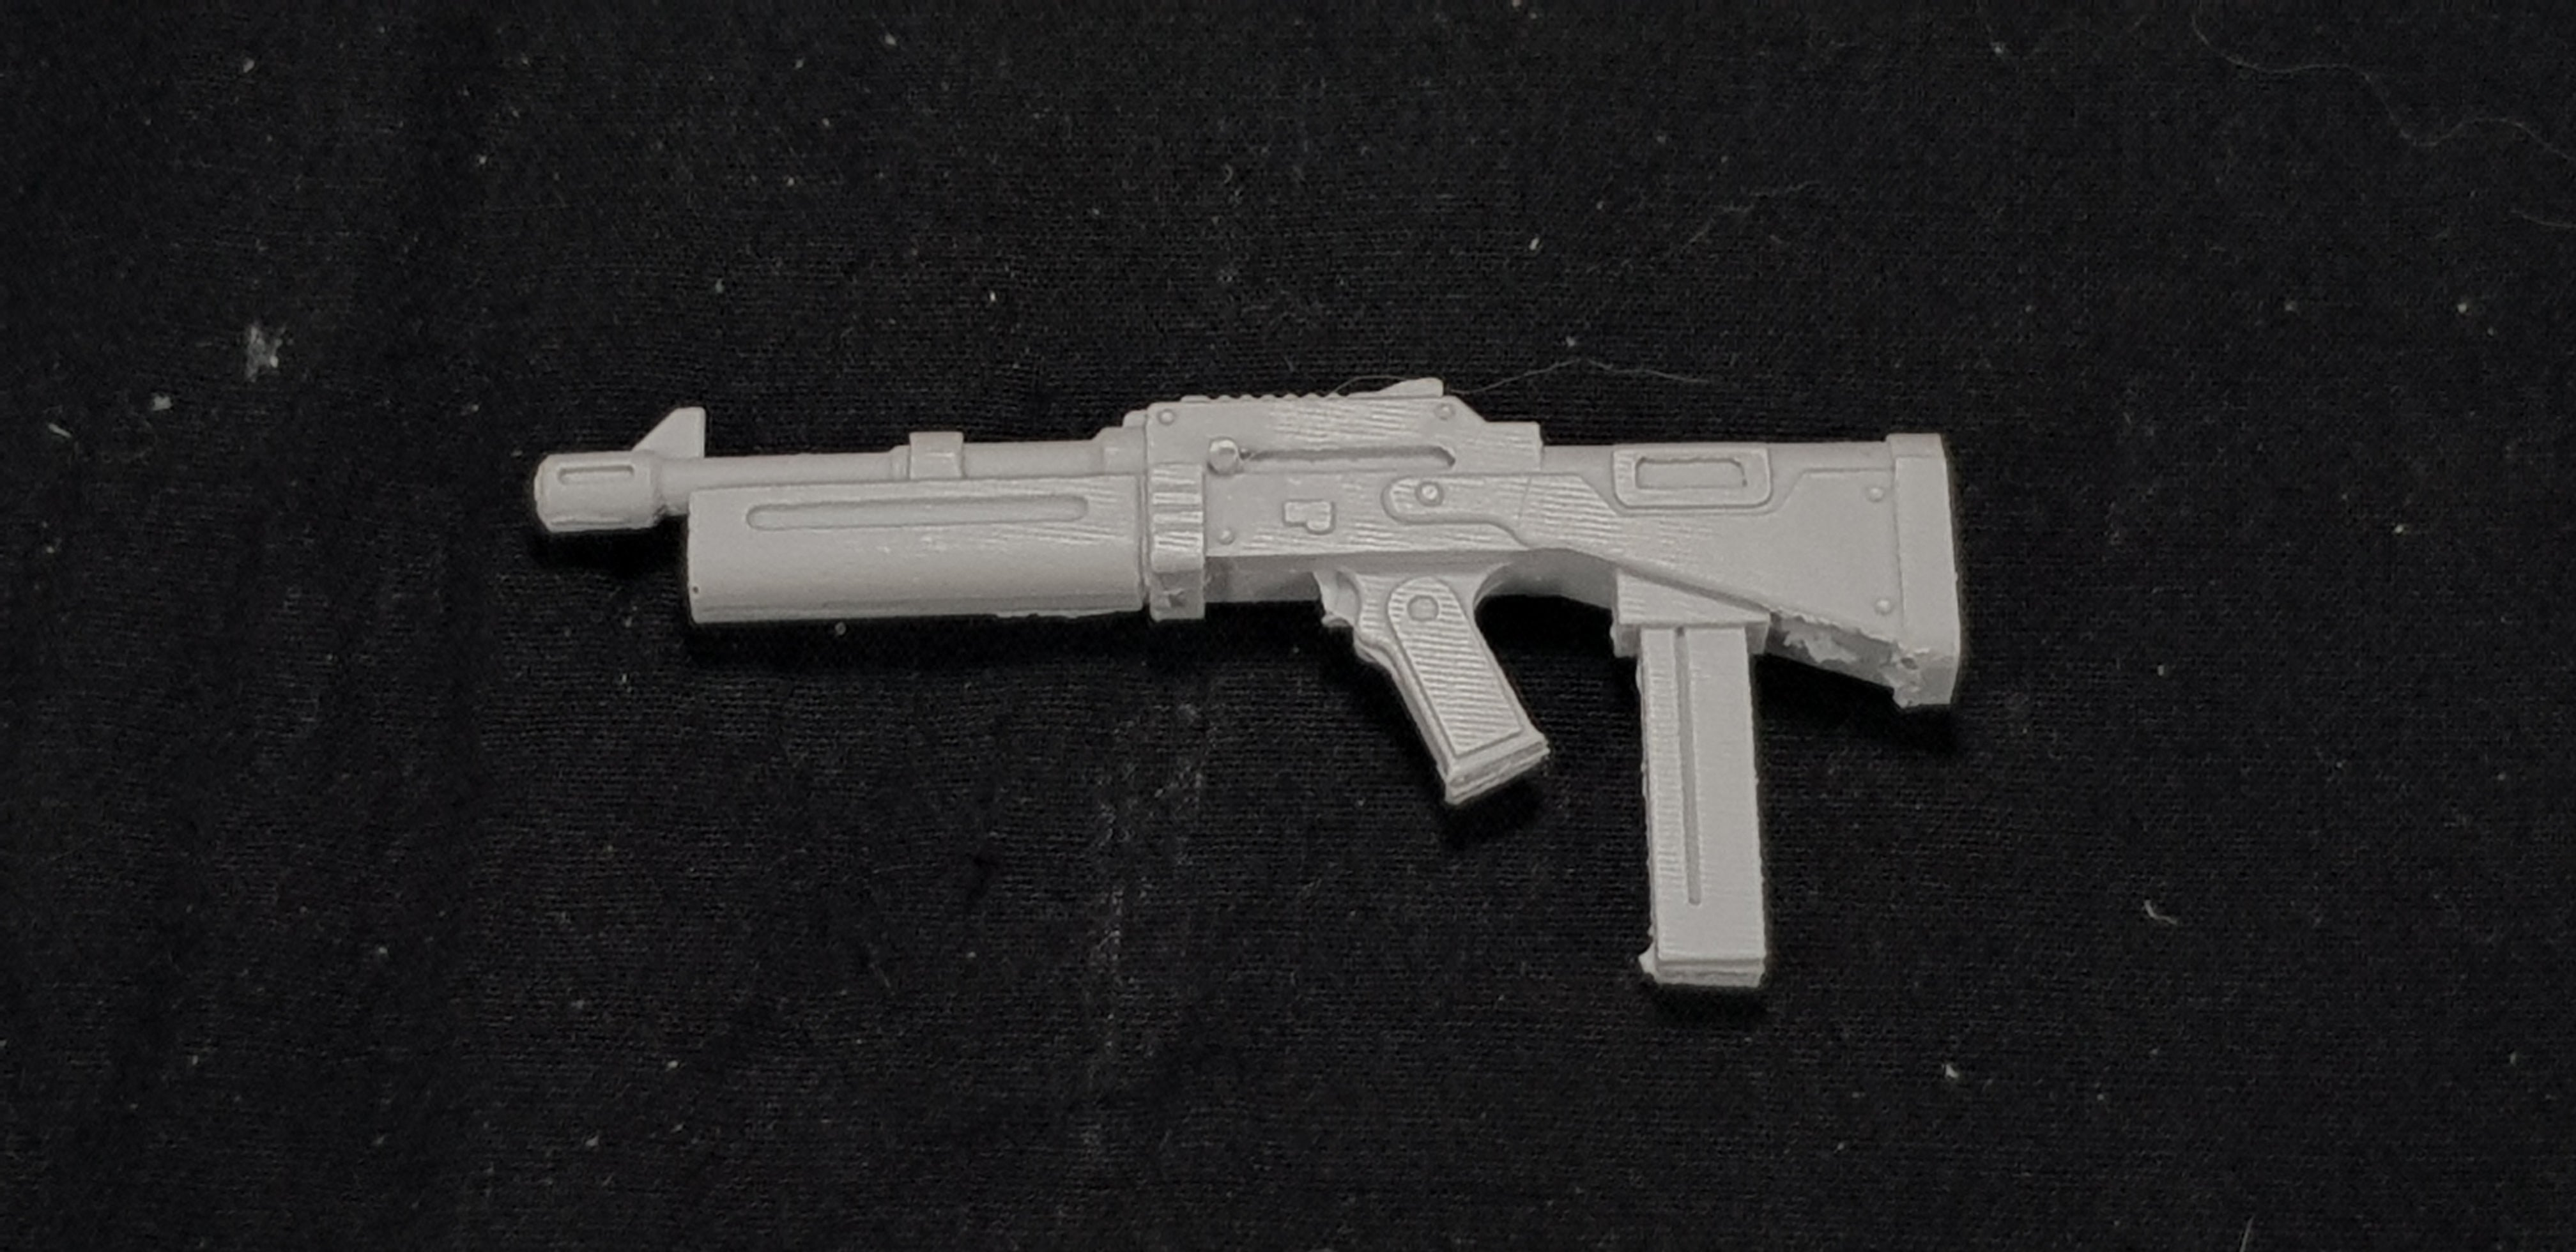 1/12 scale 'KILLROY' Sub-machine gun